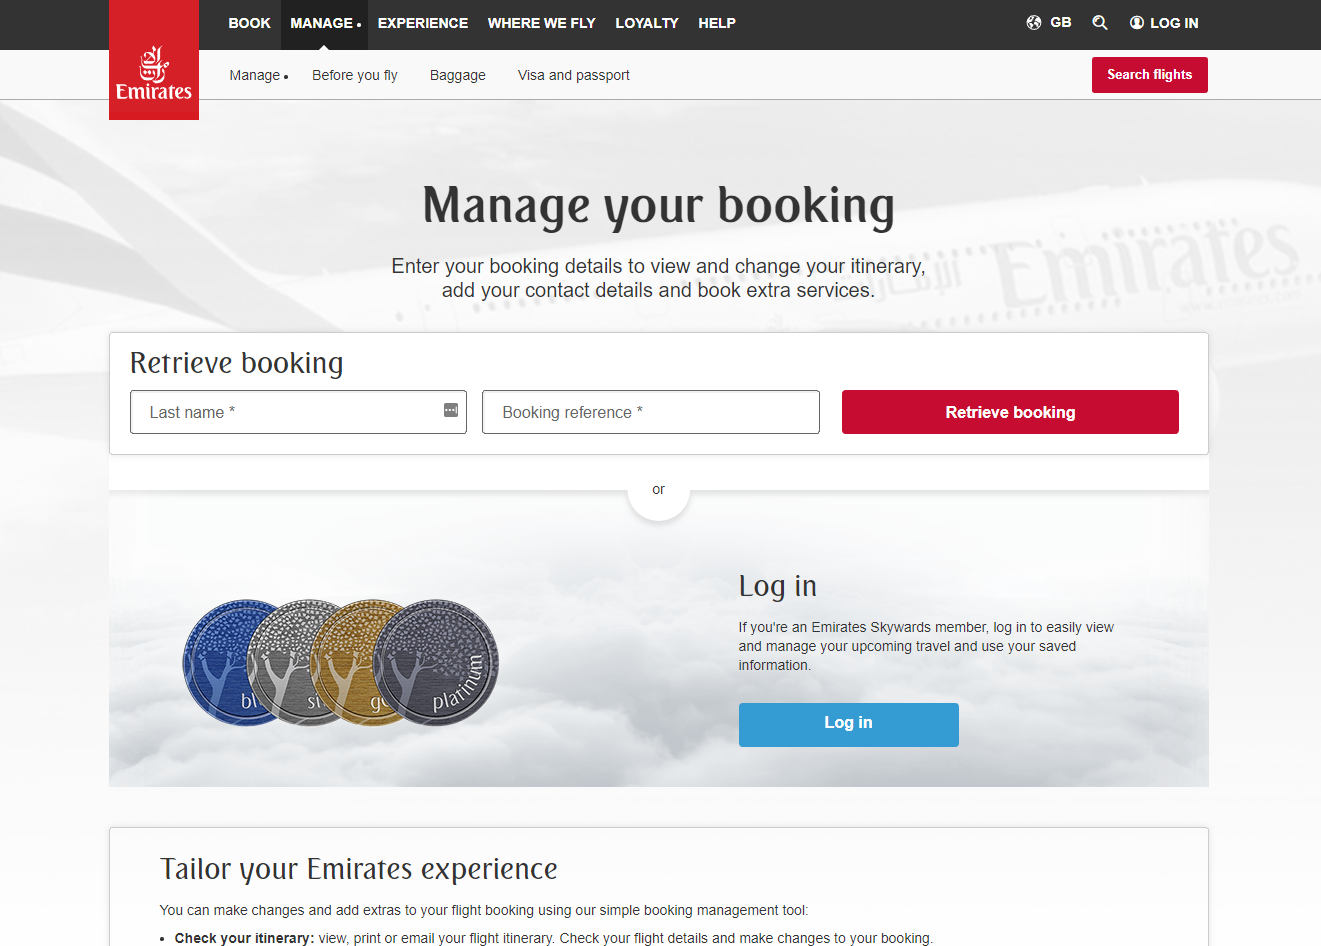 How to Cancel an Emirates Ticket